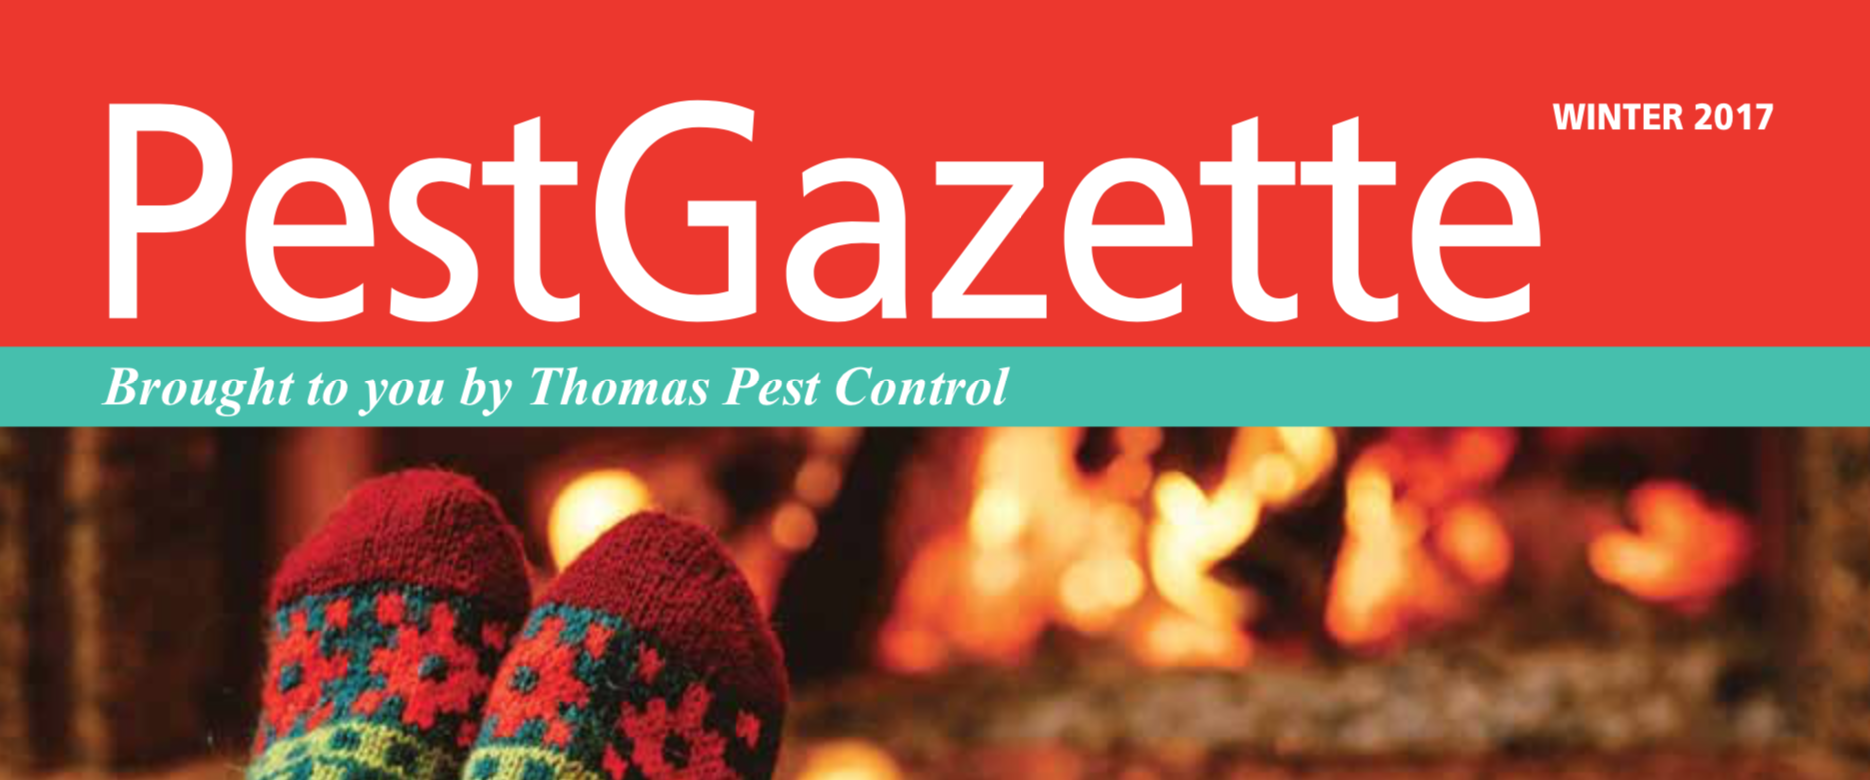 Pest-Gazette-Winter-2017